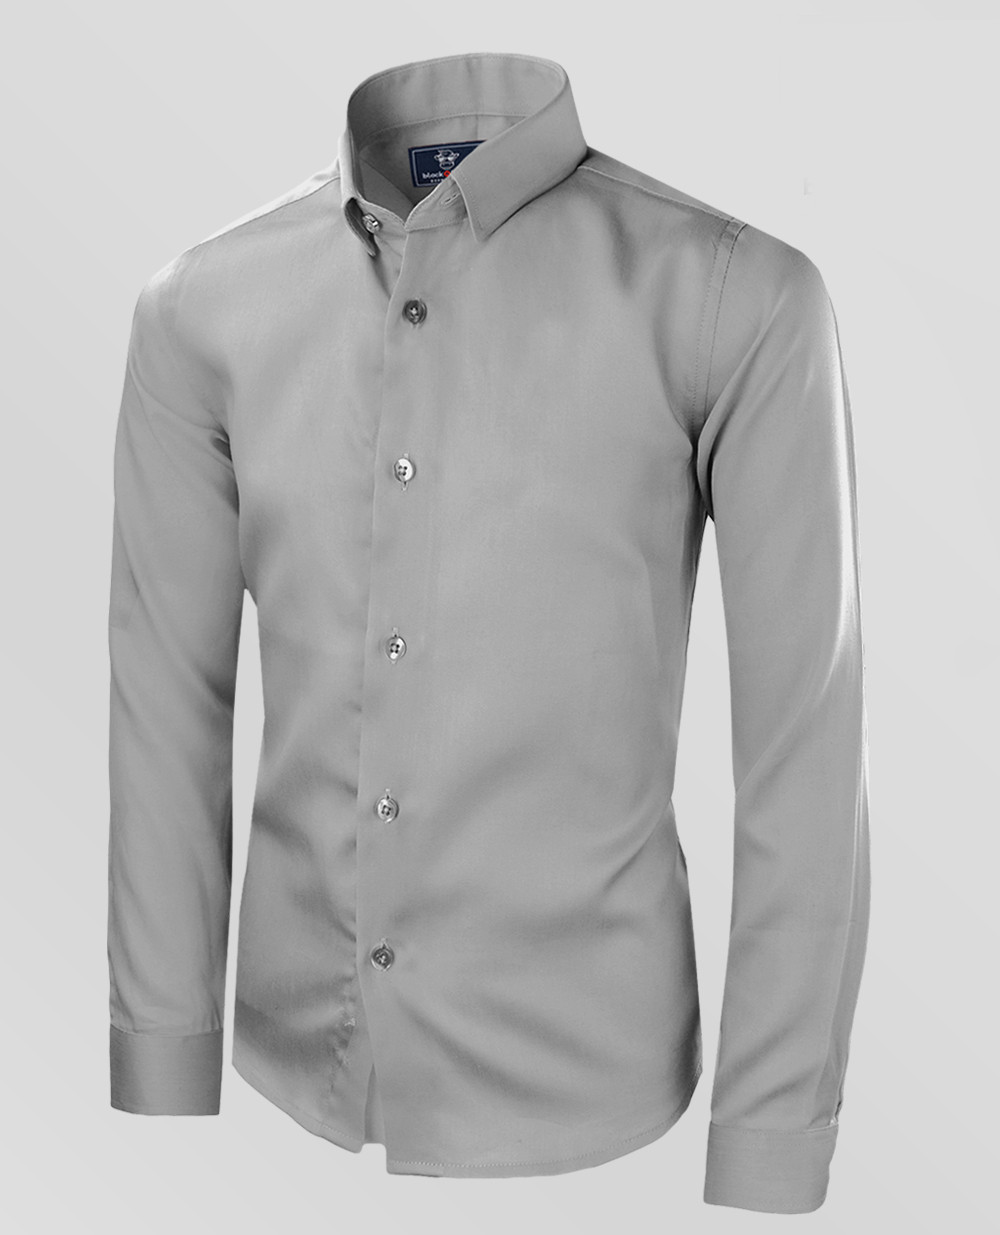 Black N Bianco Boys Signature Sateen Dress Shirt In Gray